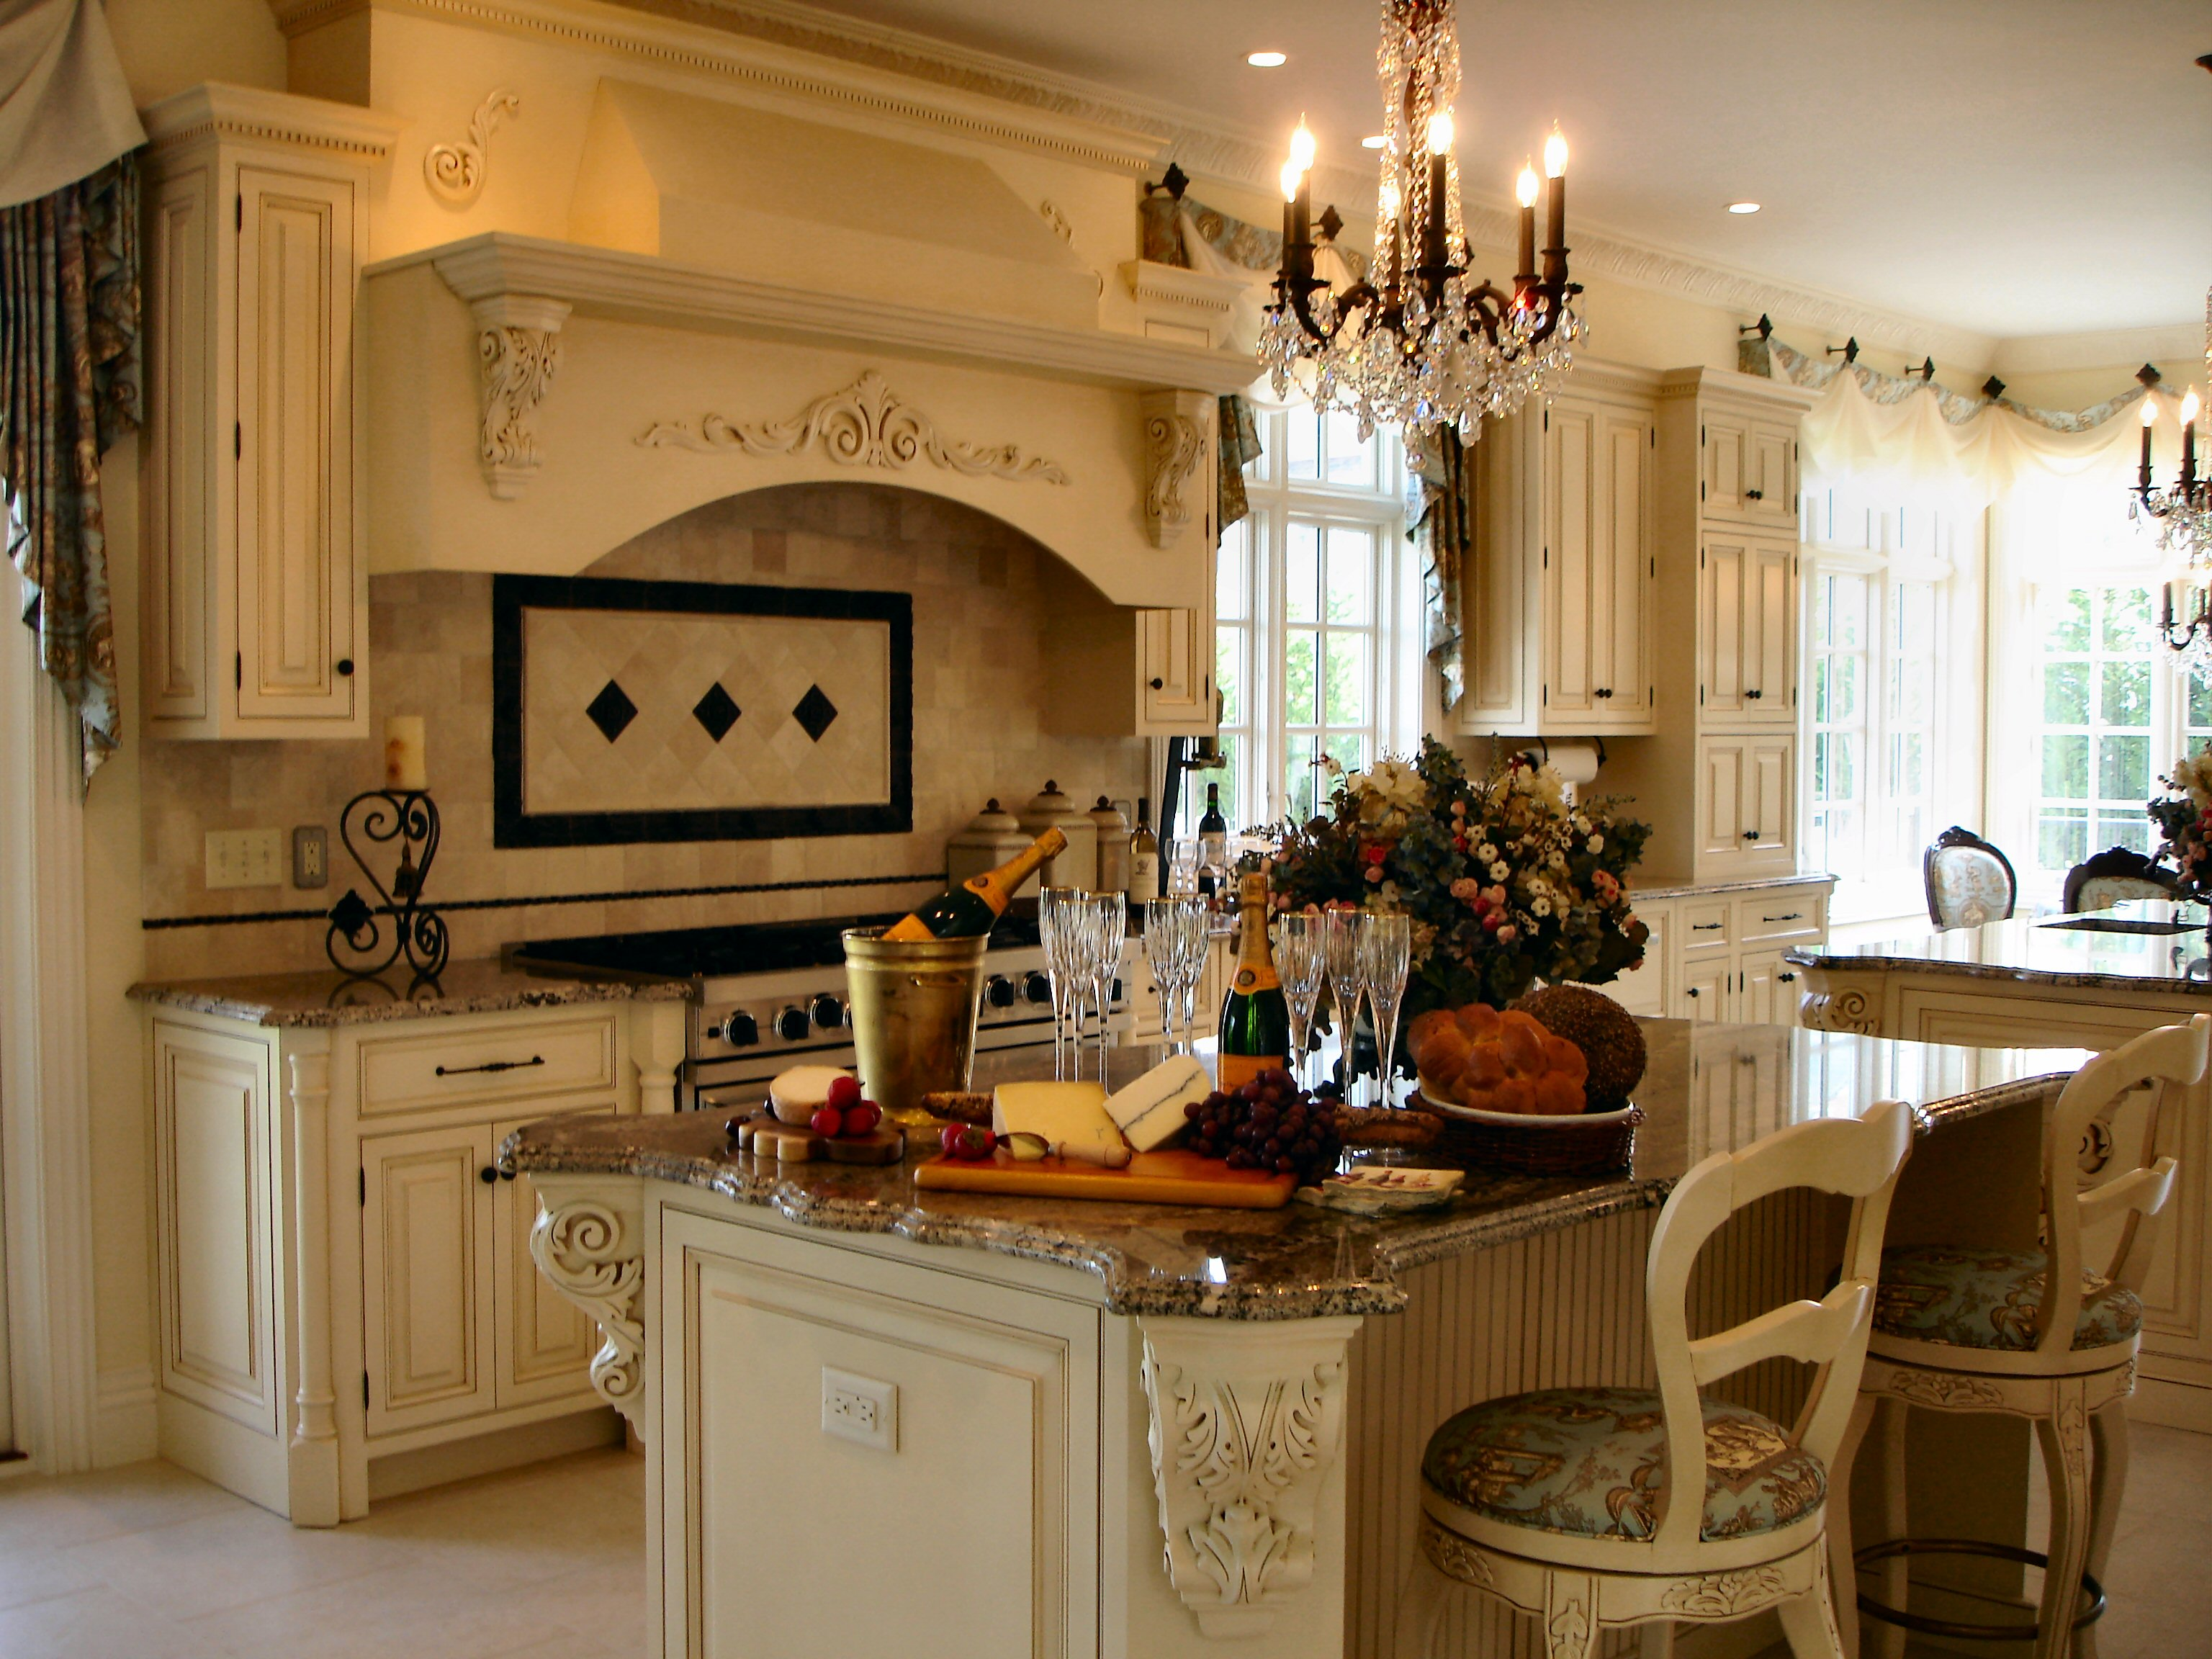 Kitchen Remodeling Nj Ideas Entrancing Monmouth County Kitchen Remodeling Ideas To Inspire You Inspiration Design